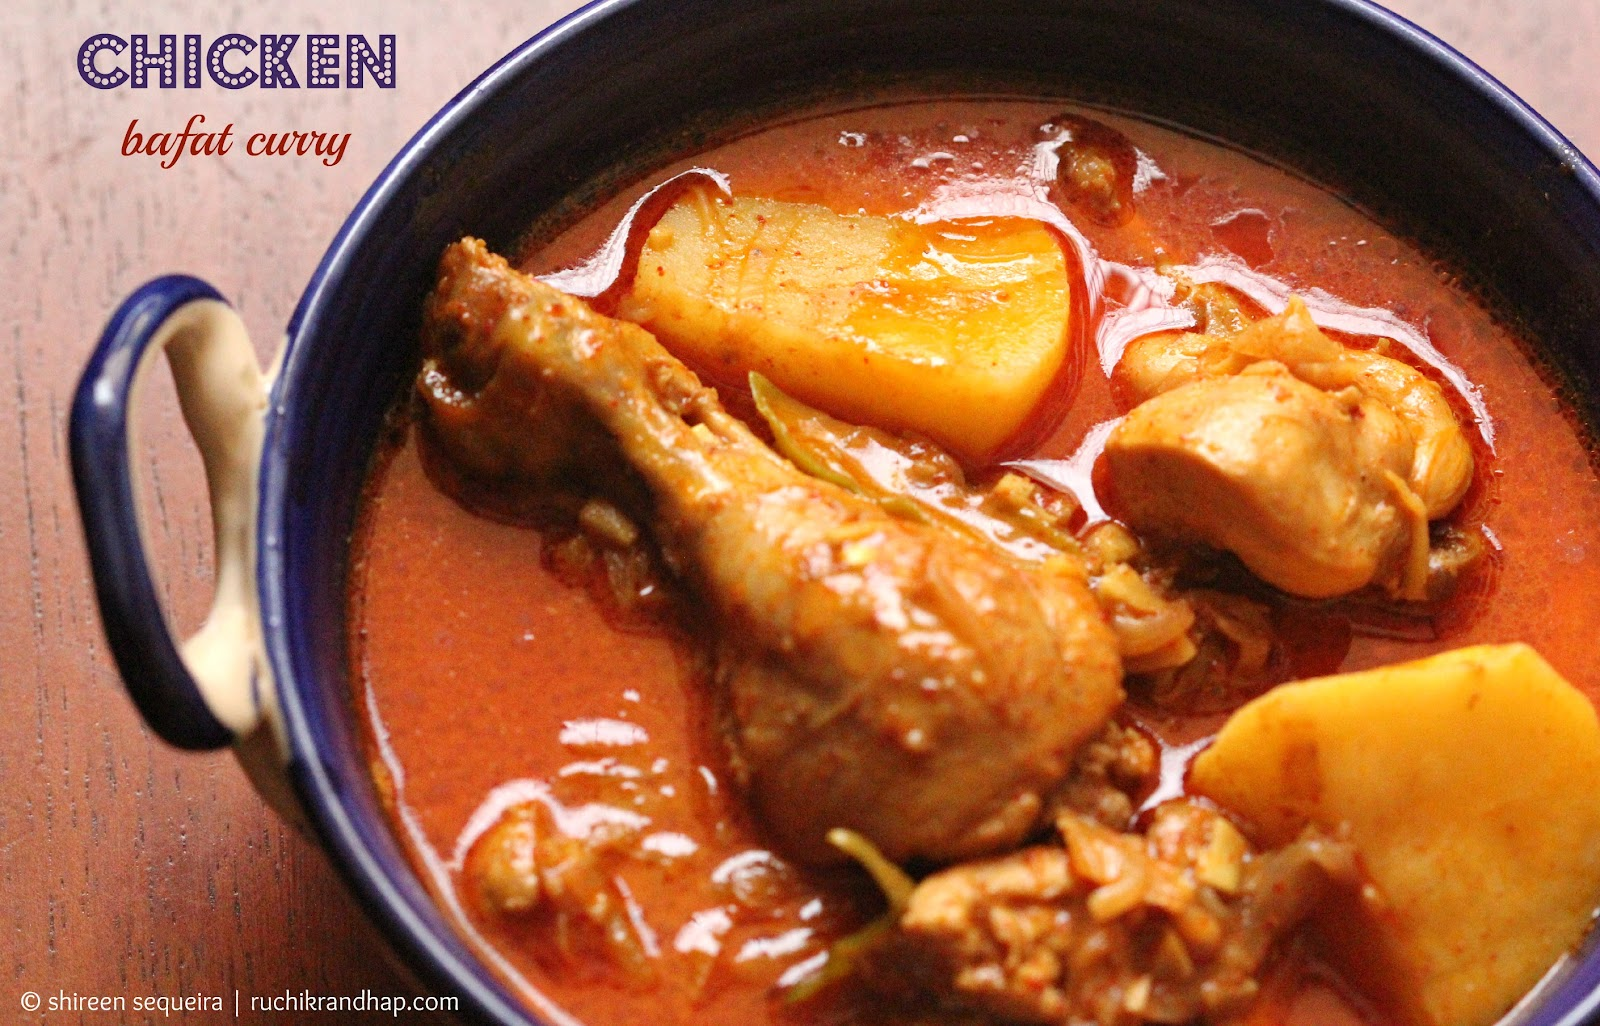 Kombi bafath chicken bafat curry ruchik randhap kombi bafath chicken bafat curry ccuart Images